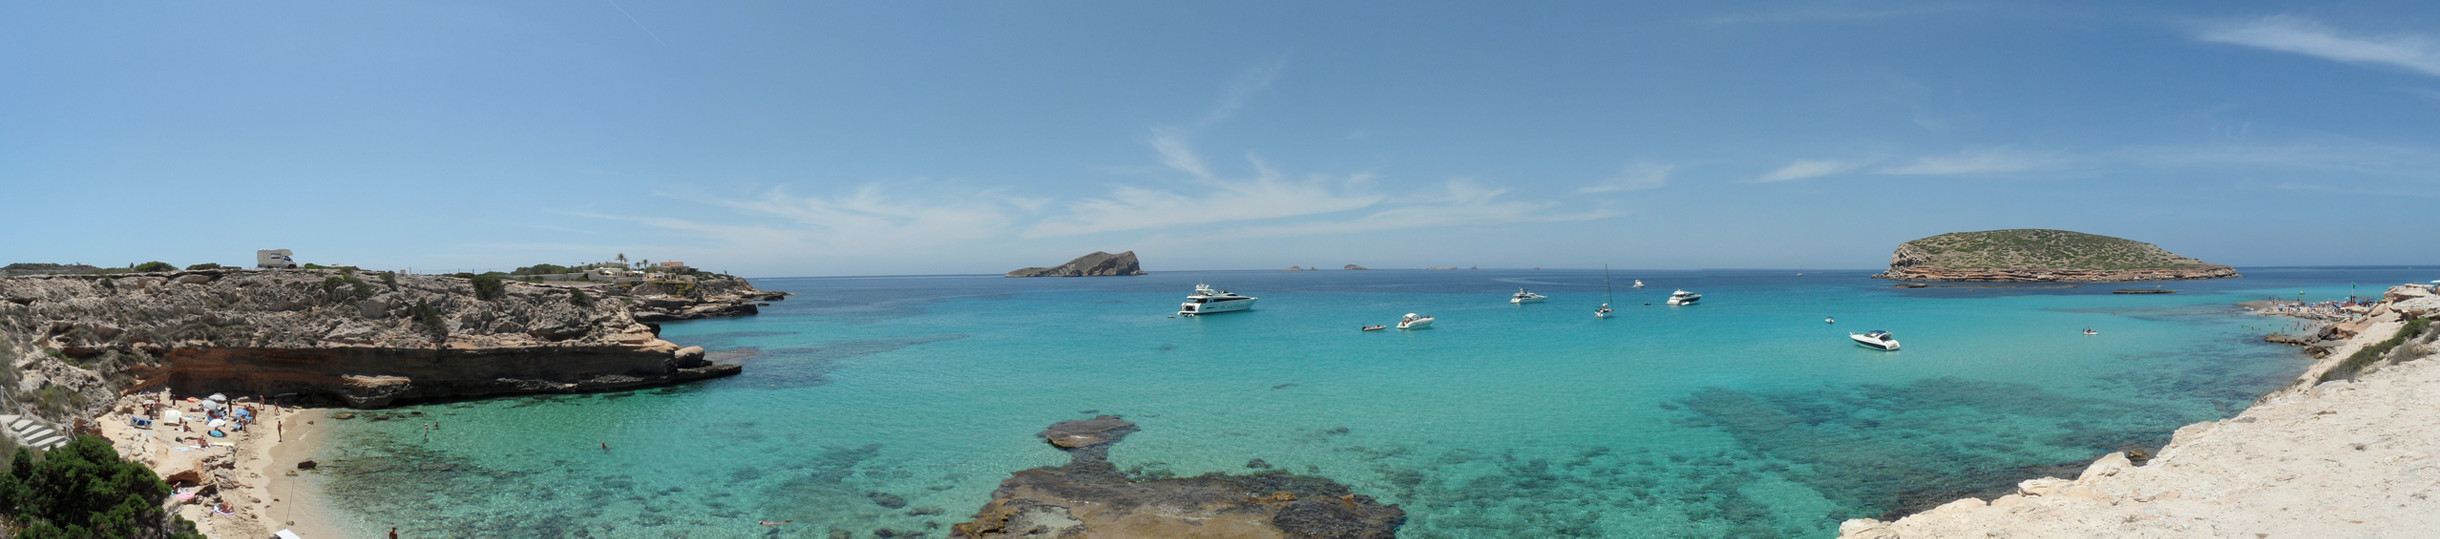 Yachts, sailboats and motorboats anchored in Cala Conta (Ibiza).